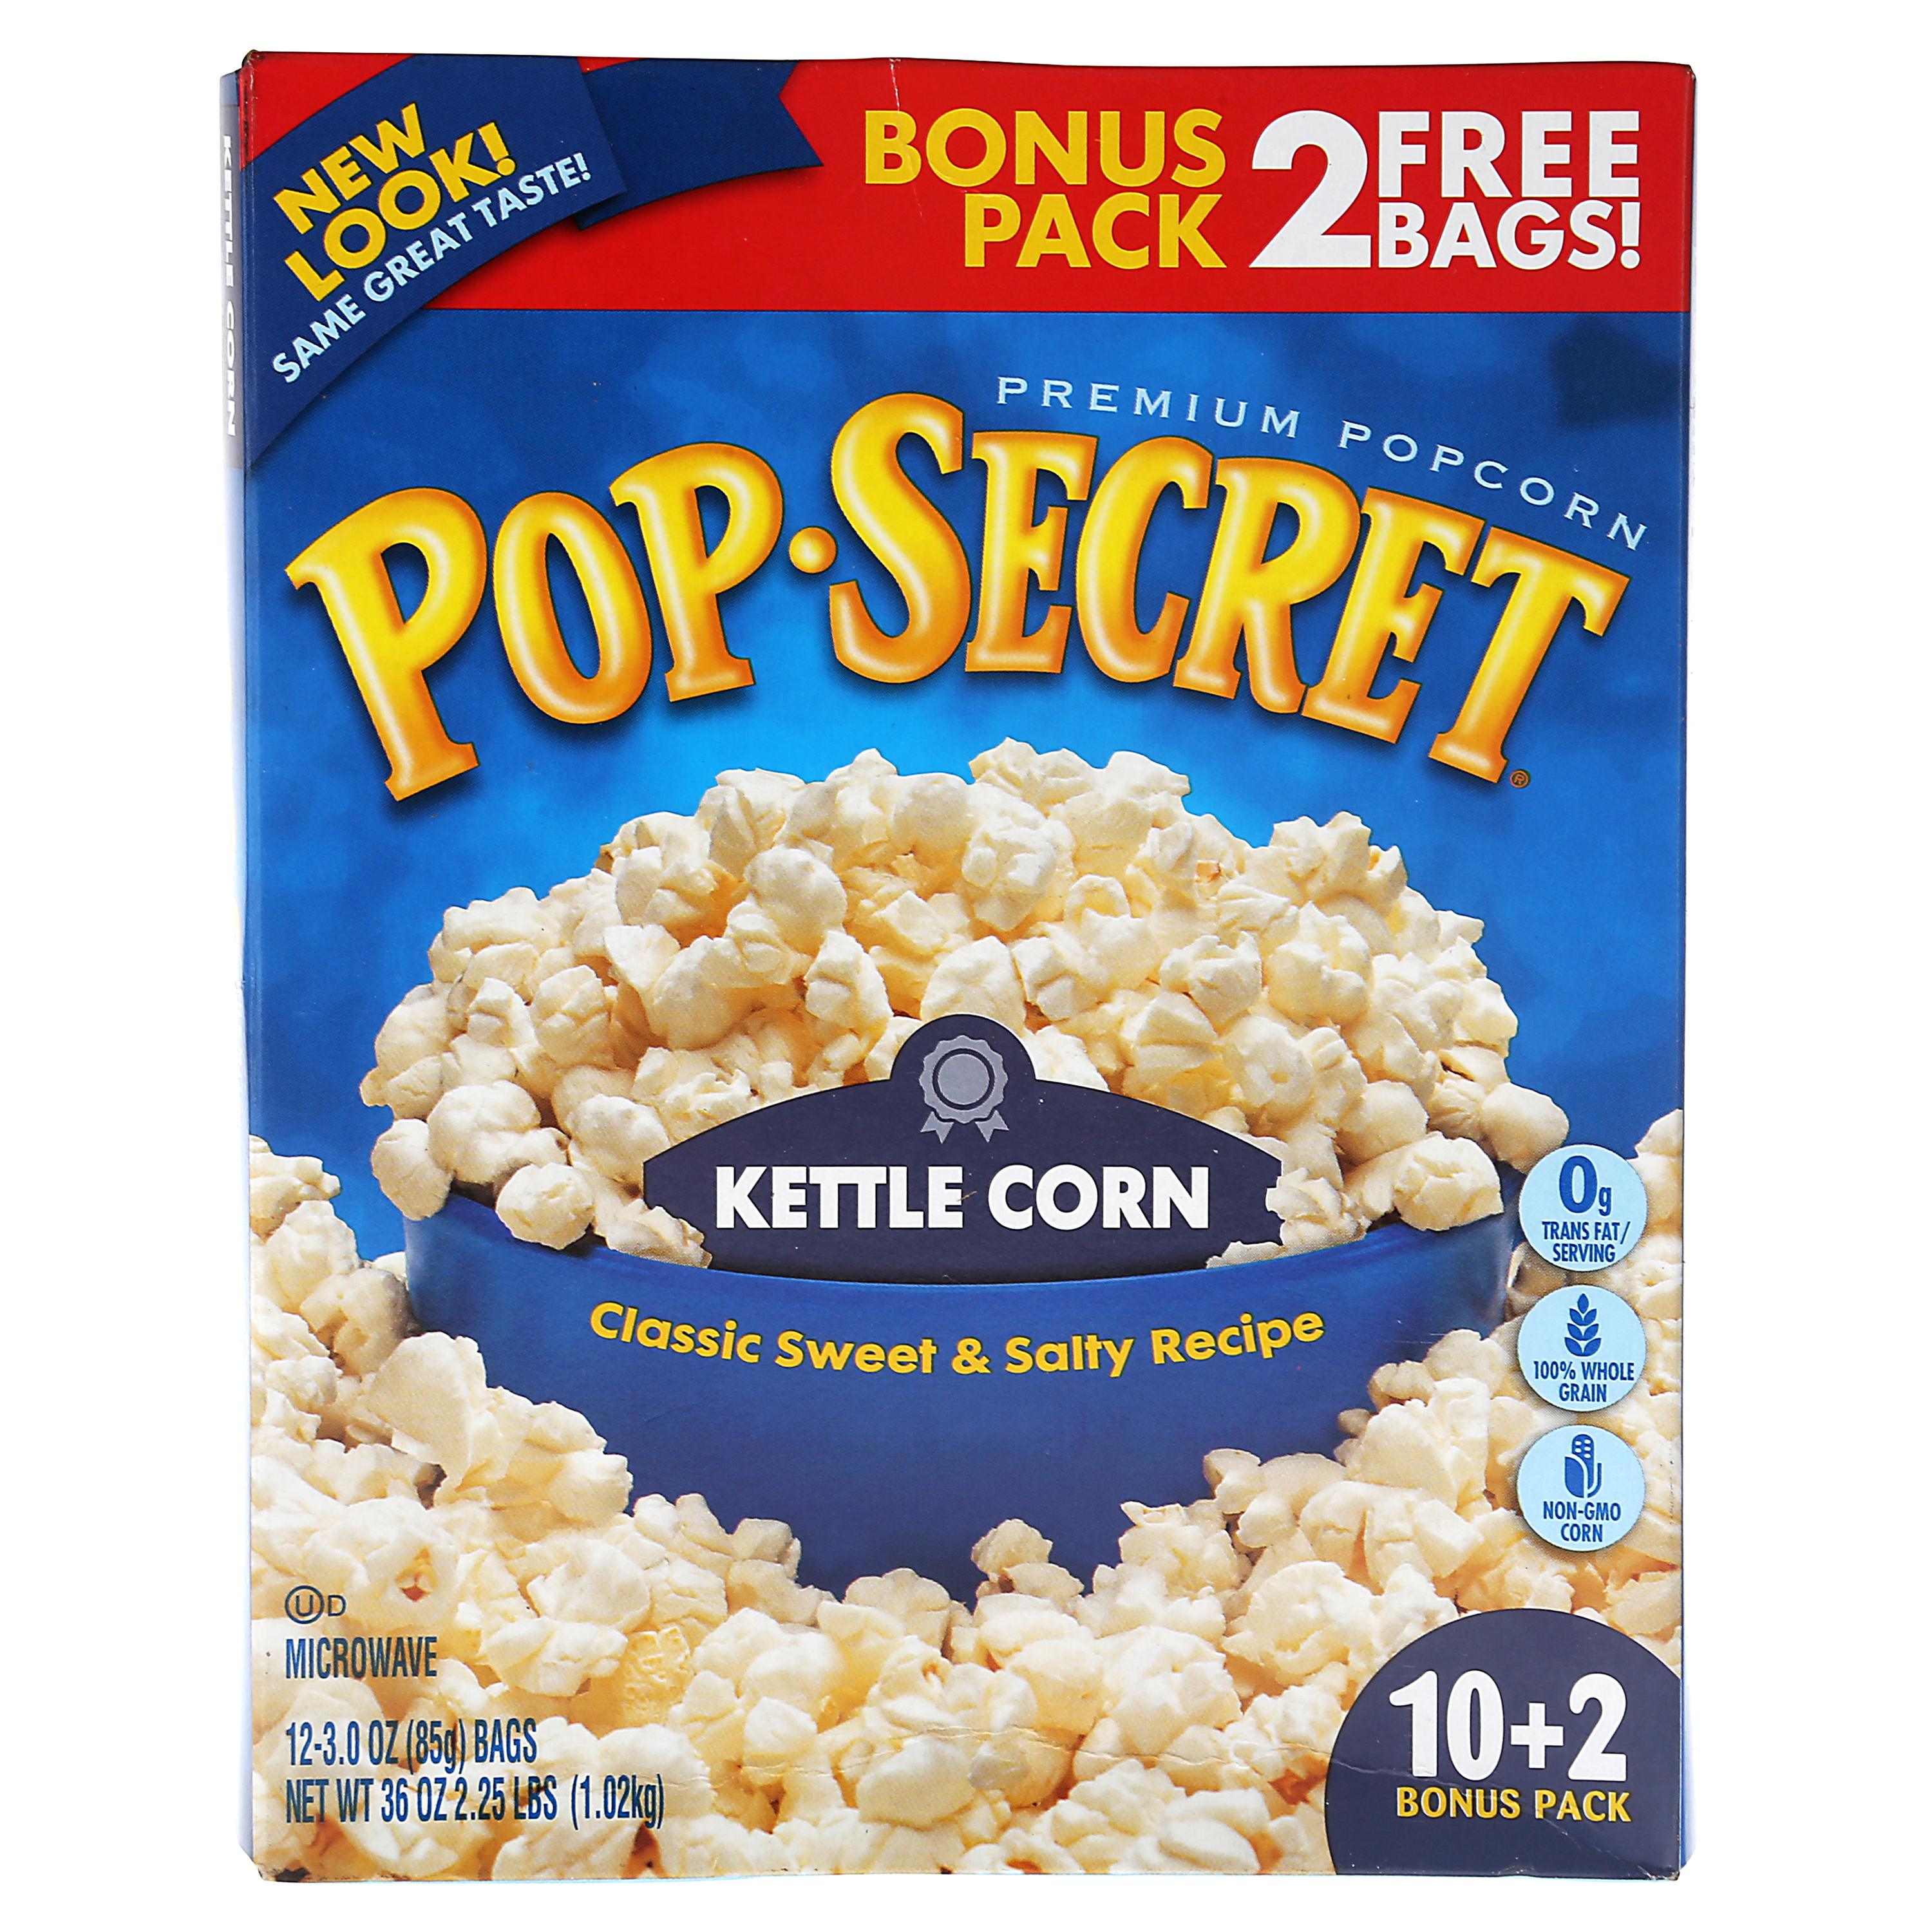 Pop Secret Kettle Corn